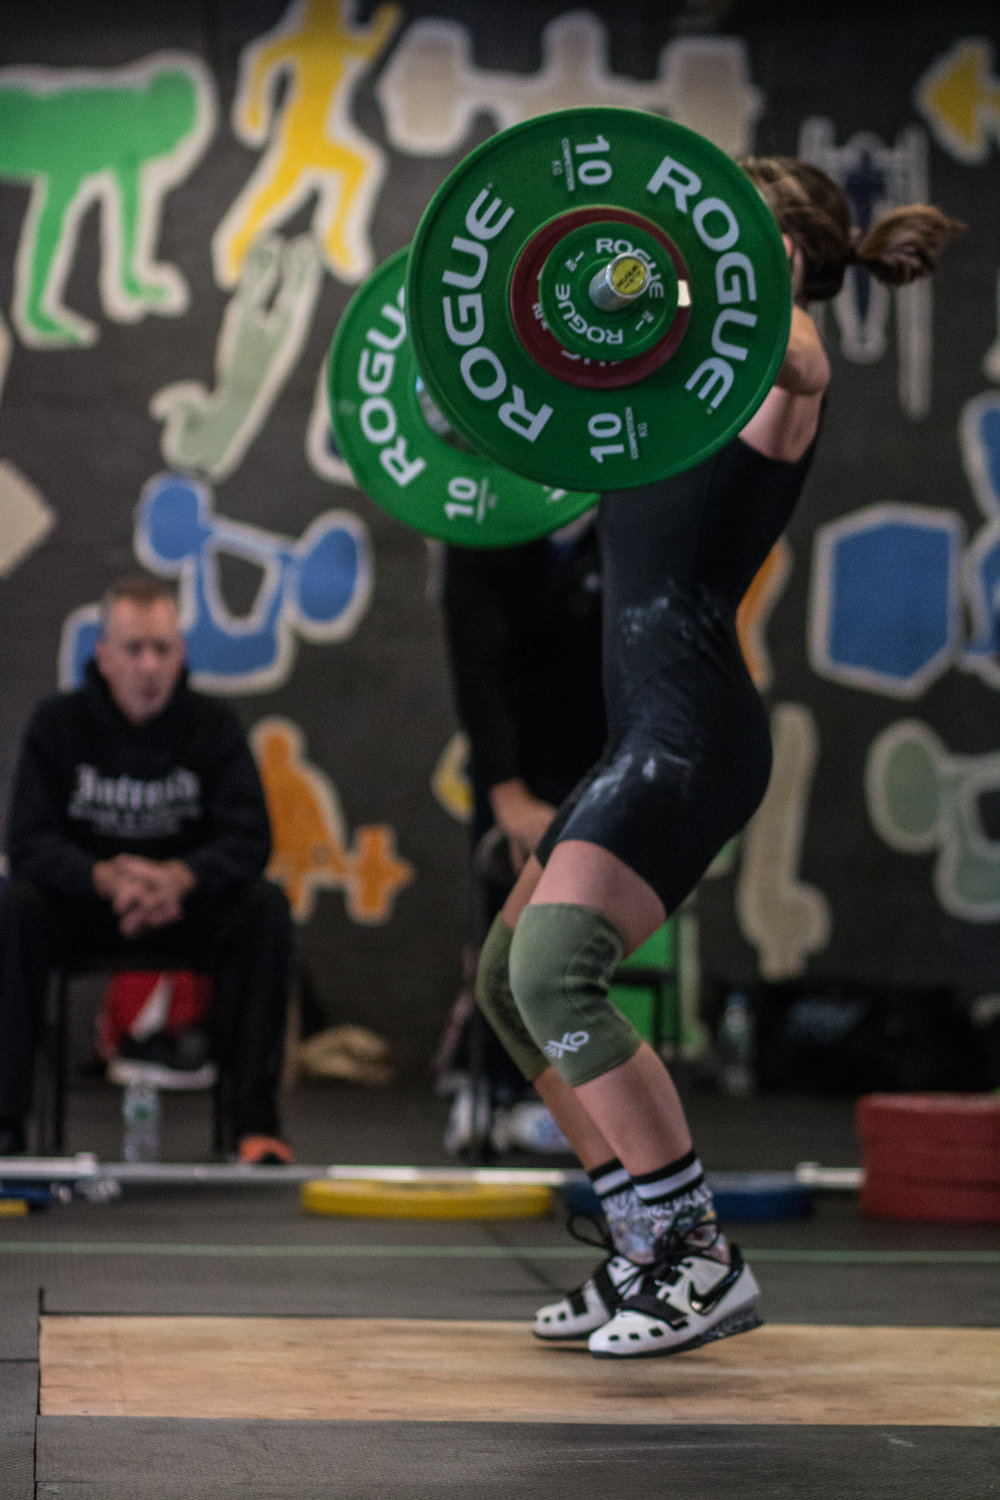 4-men-warwick-new-york-intrepid-strength-conditioning-winter-open-weightlifting-meet-weightlifting-photography (4 of 7).jpg